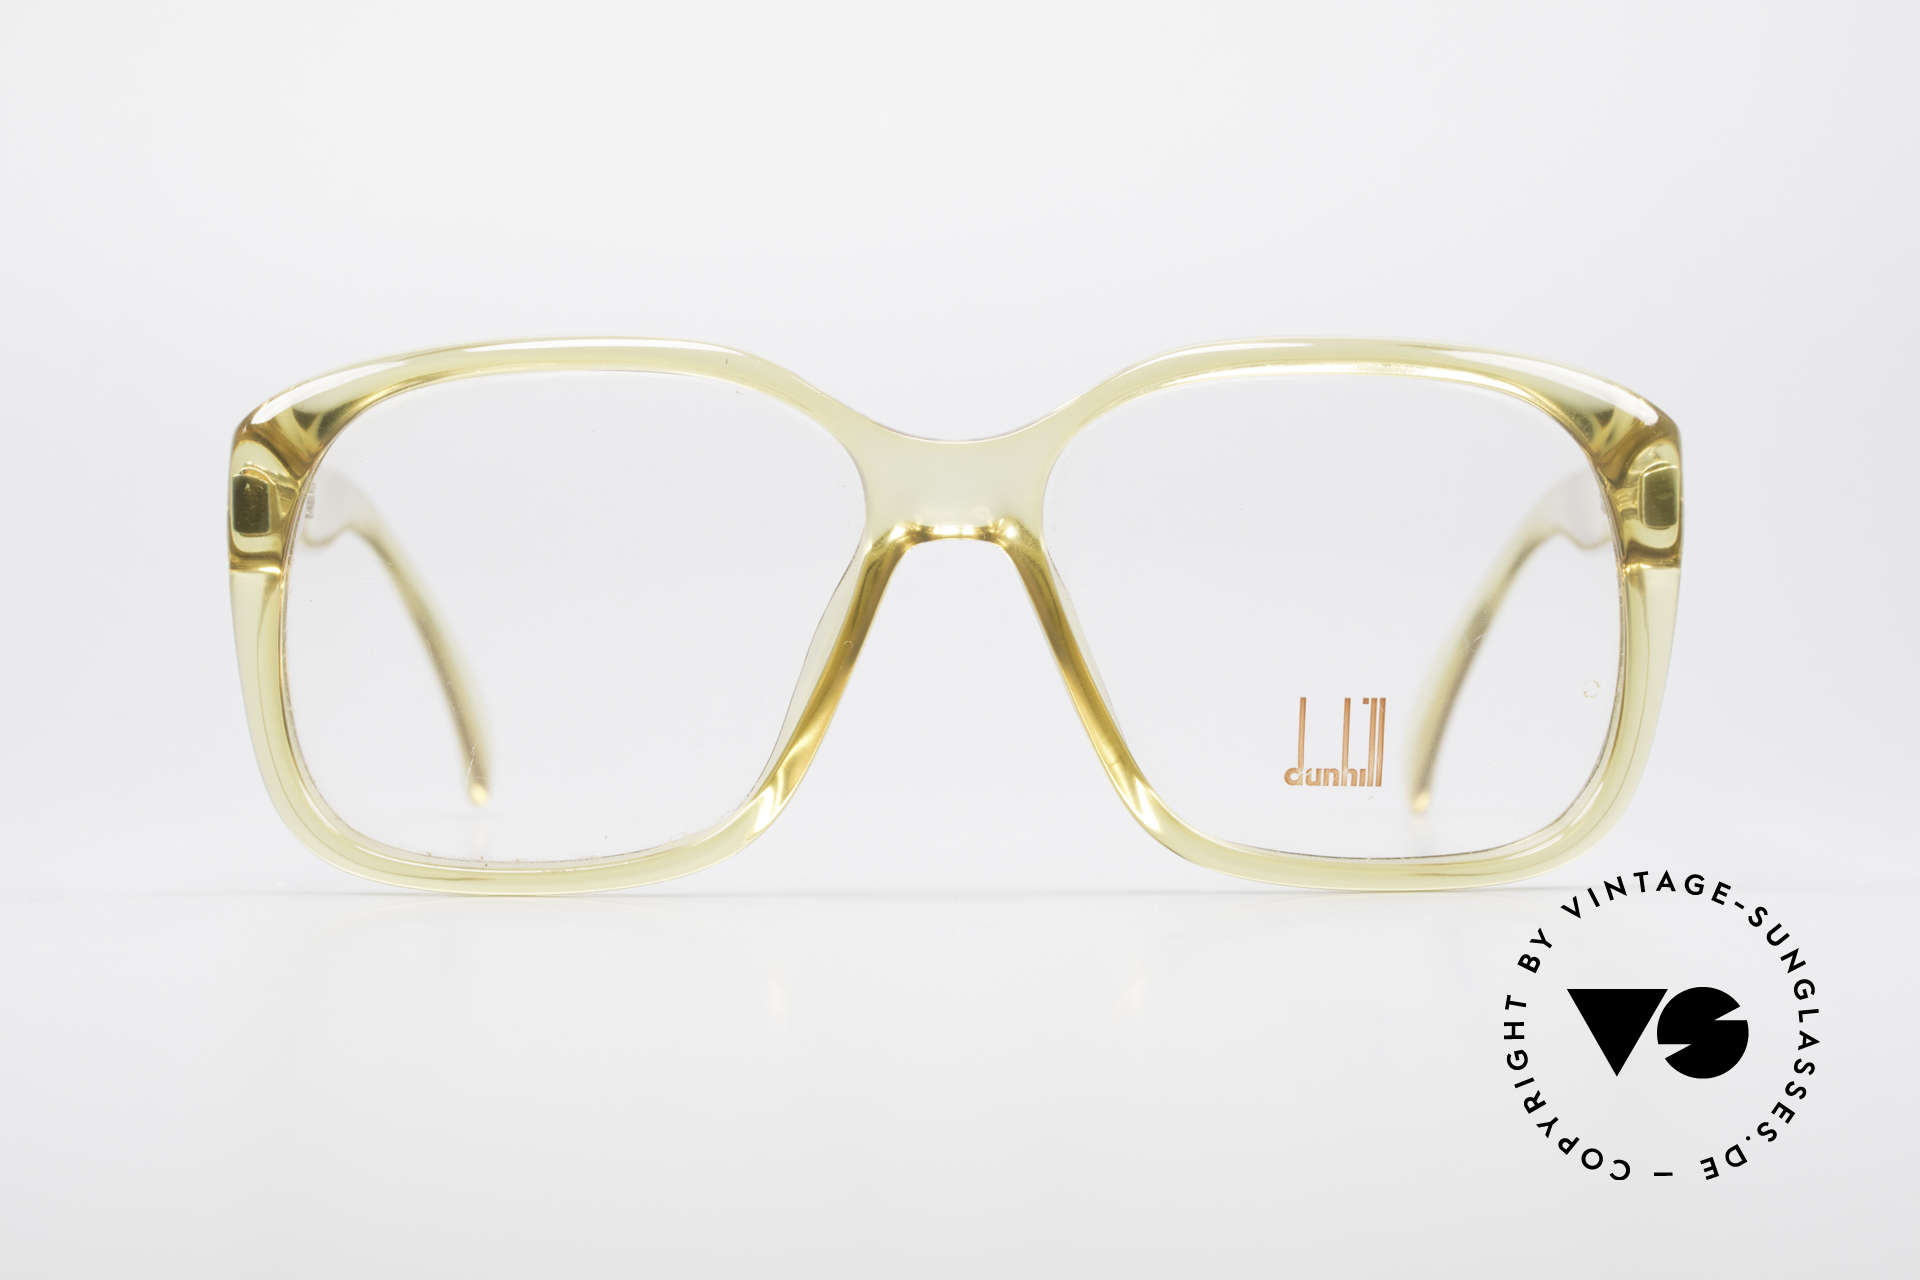 Dunhill 6013 80's Old School Goliath Frame, massive frame (80's Hip Hop style); truly OLD SCHOOL, Made for Men